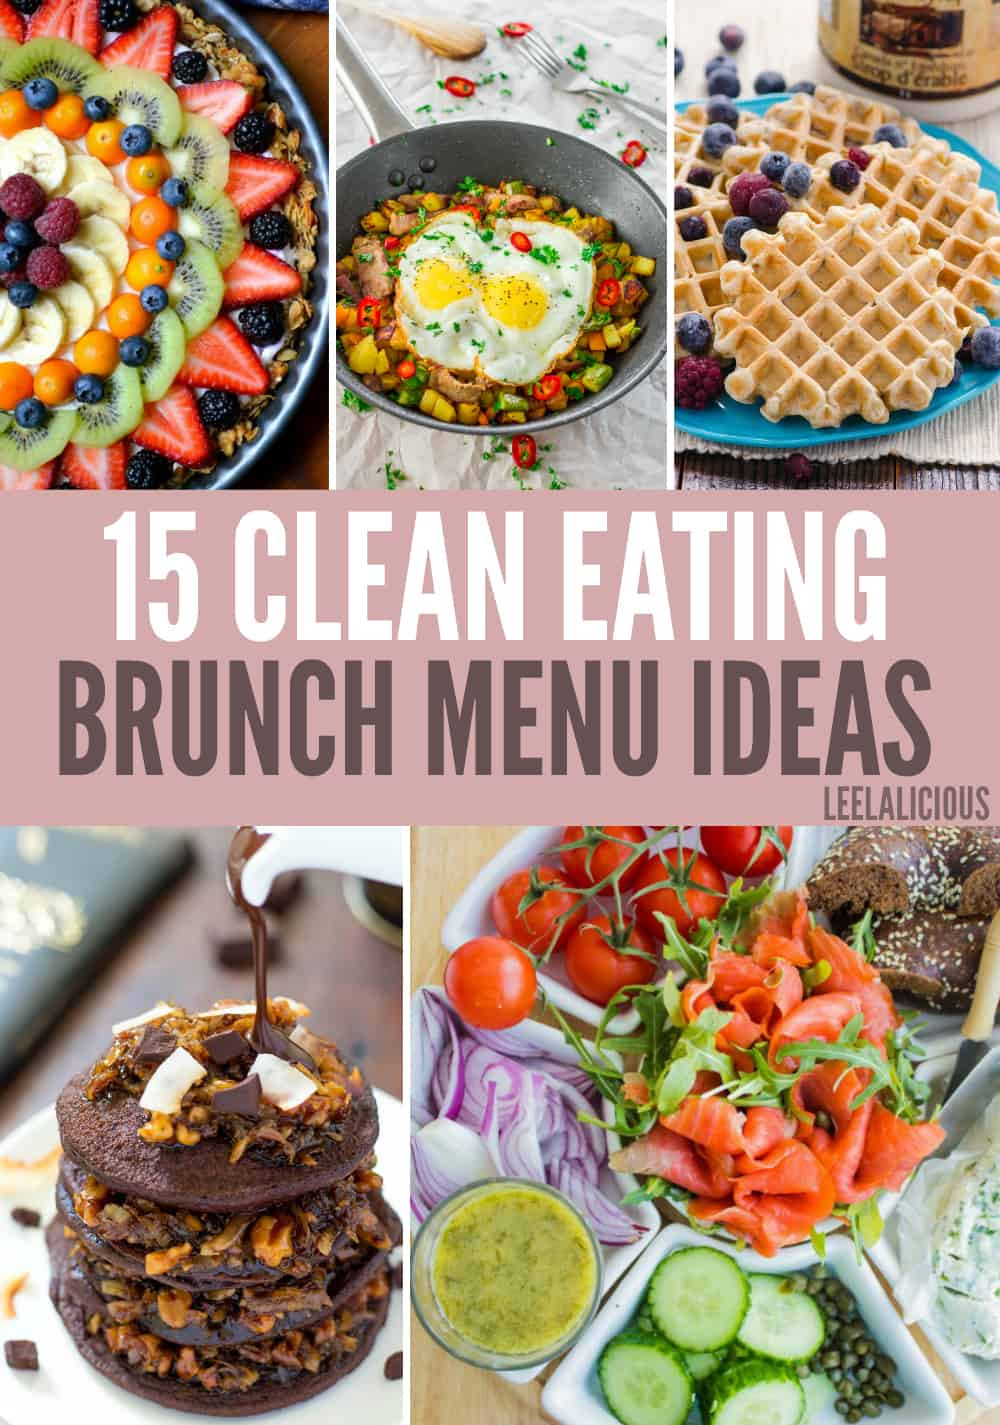 Best Easter Dinner Menu Ideas  15 Best Clean Eating Brunch Menu Ideas – LeelaLicious